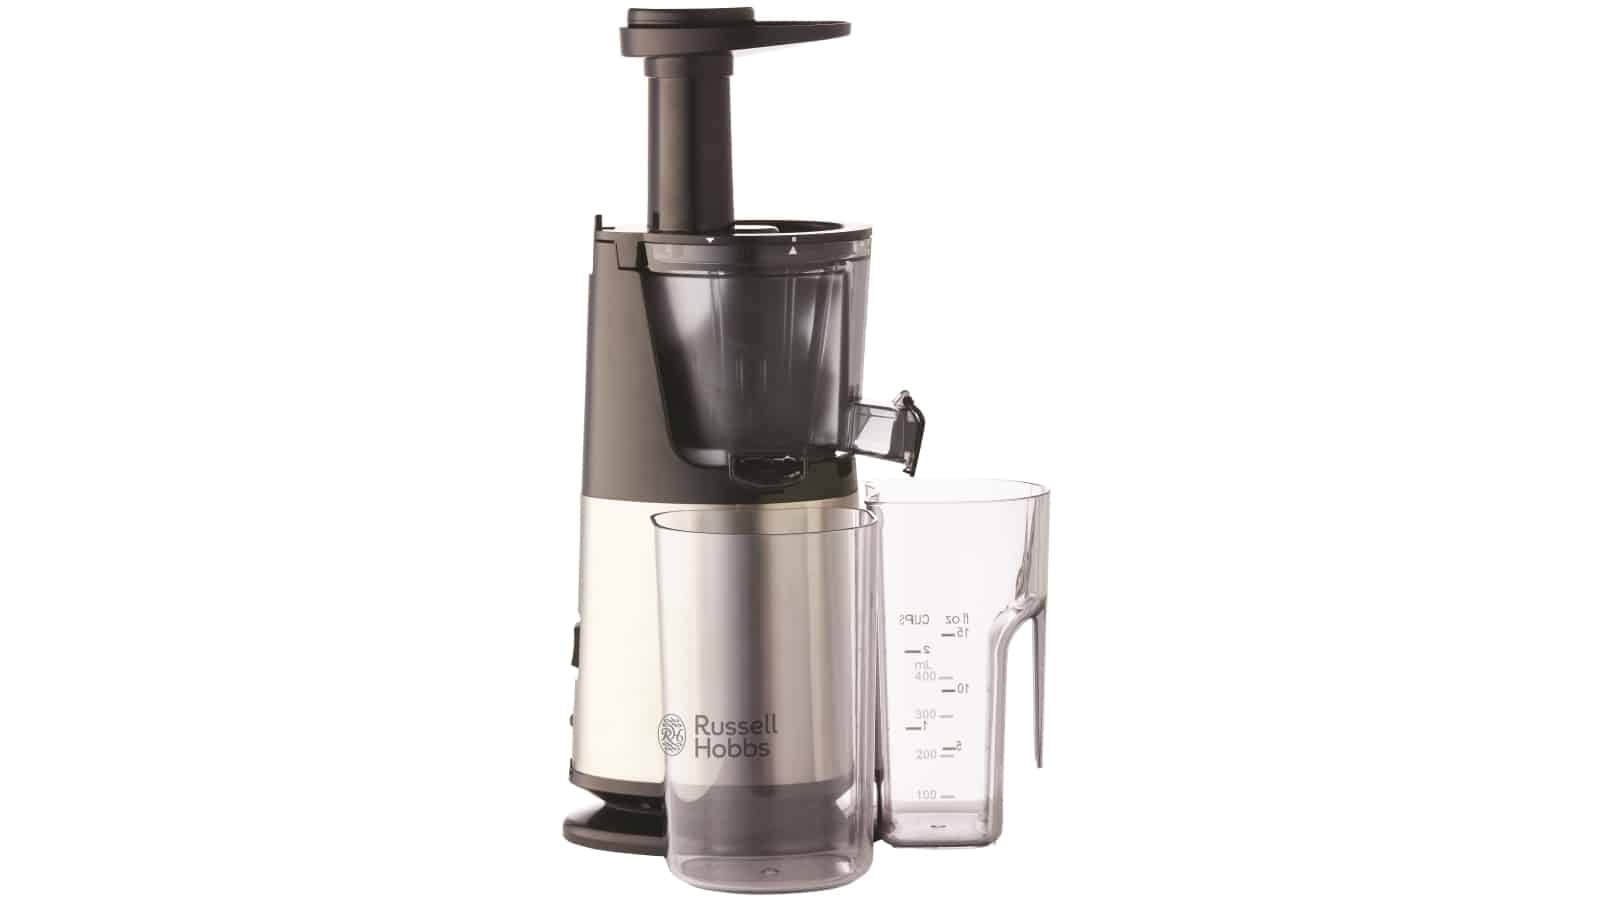 Russell Hobbs Slow Juicer test